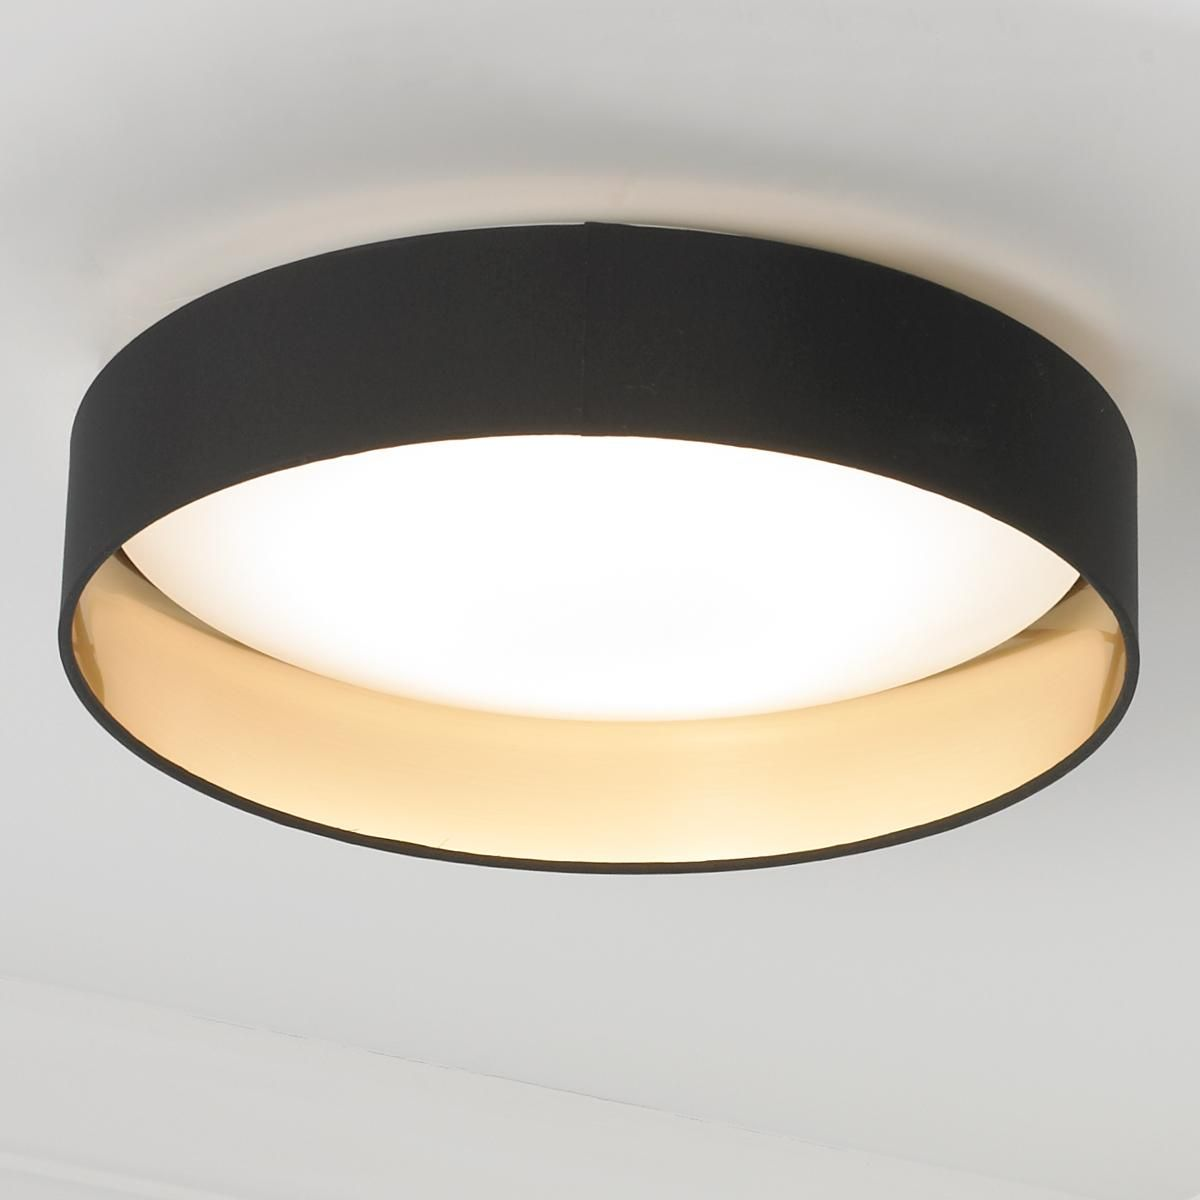 Modern Ringed LED Ceiling Light Available In 3 Colors Black And Gold Brown